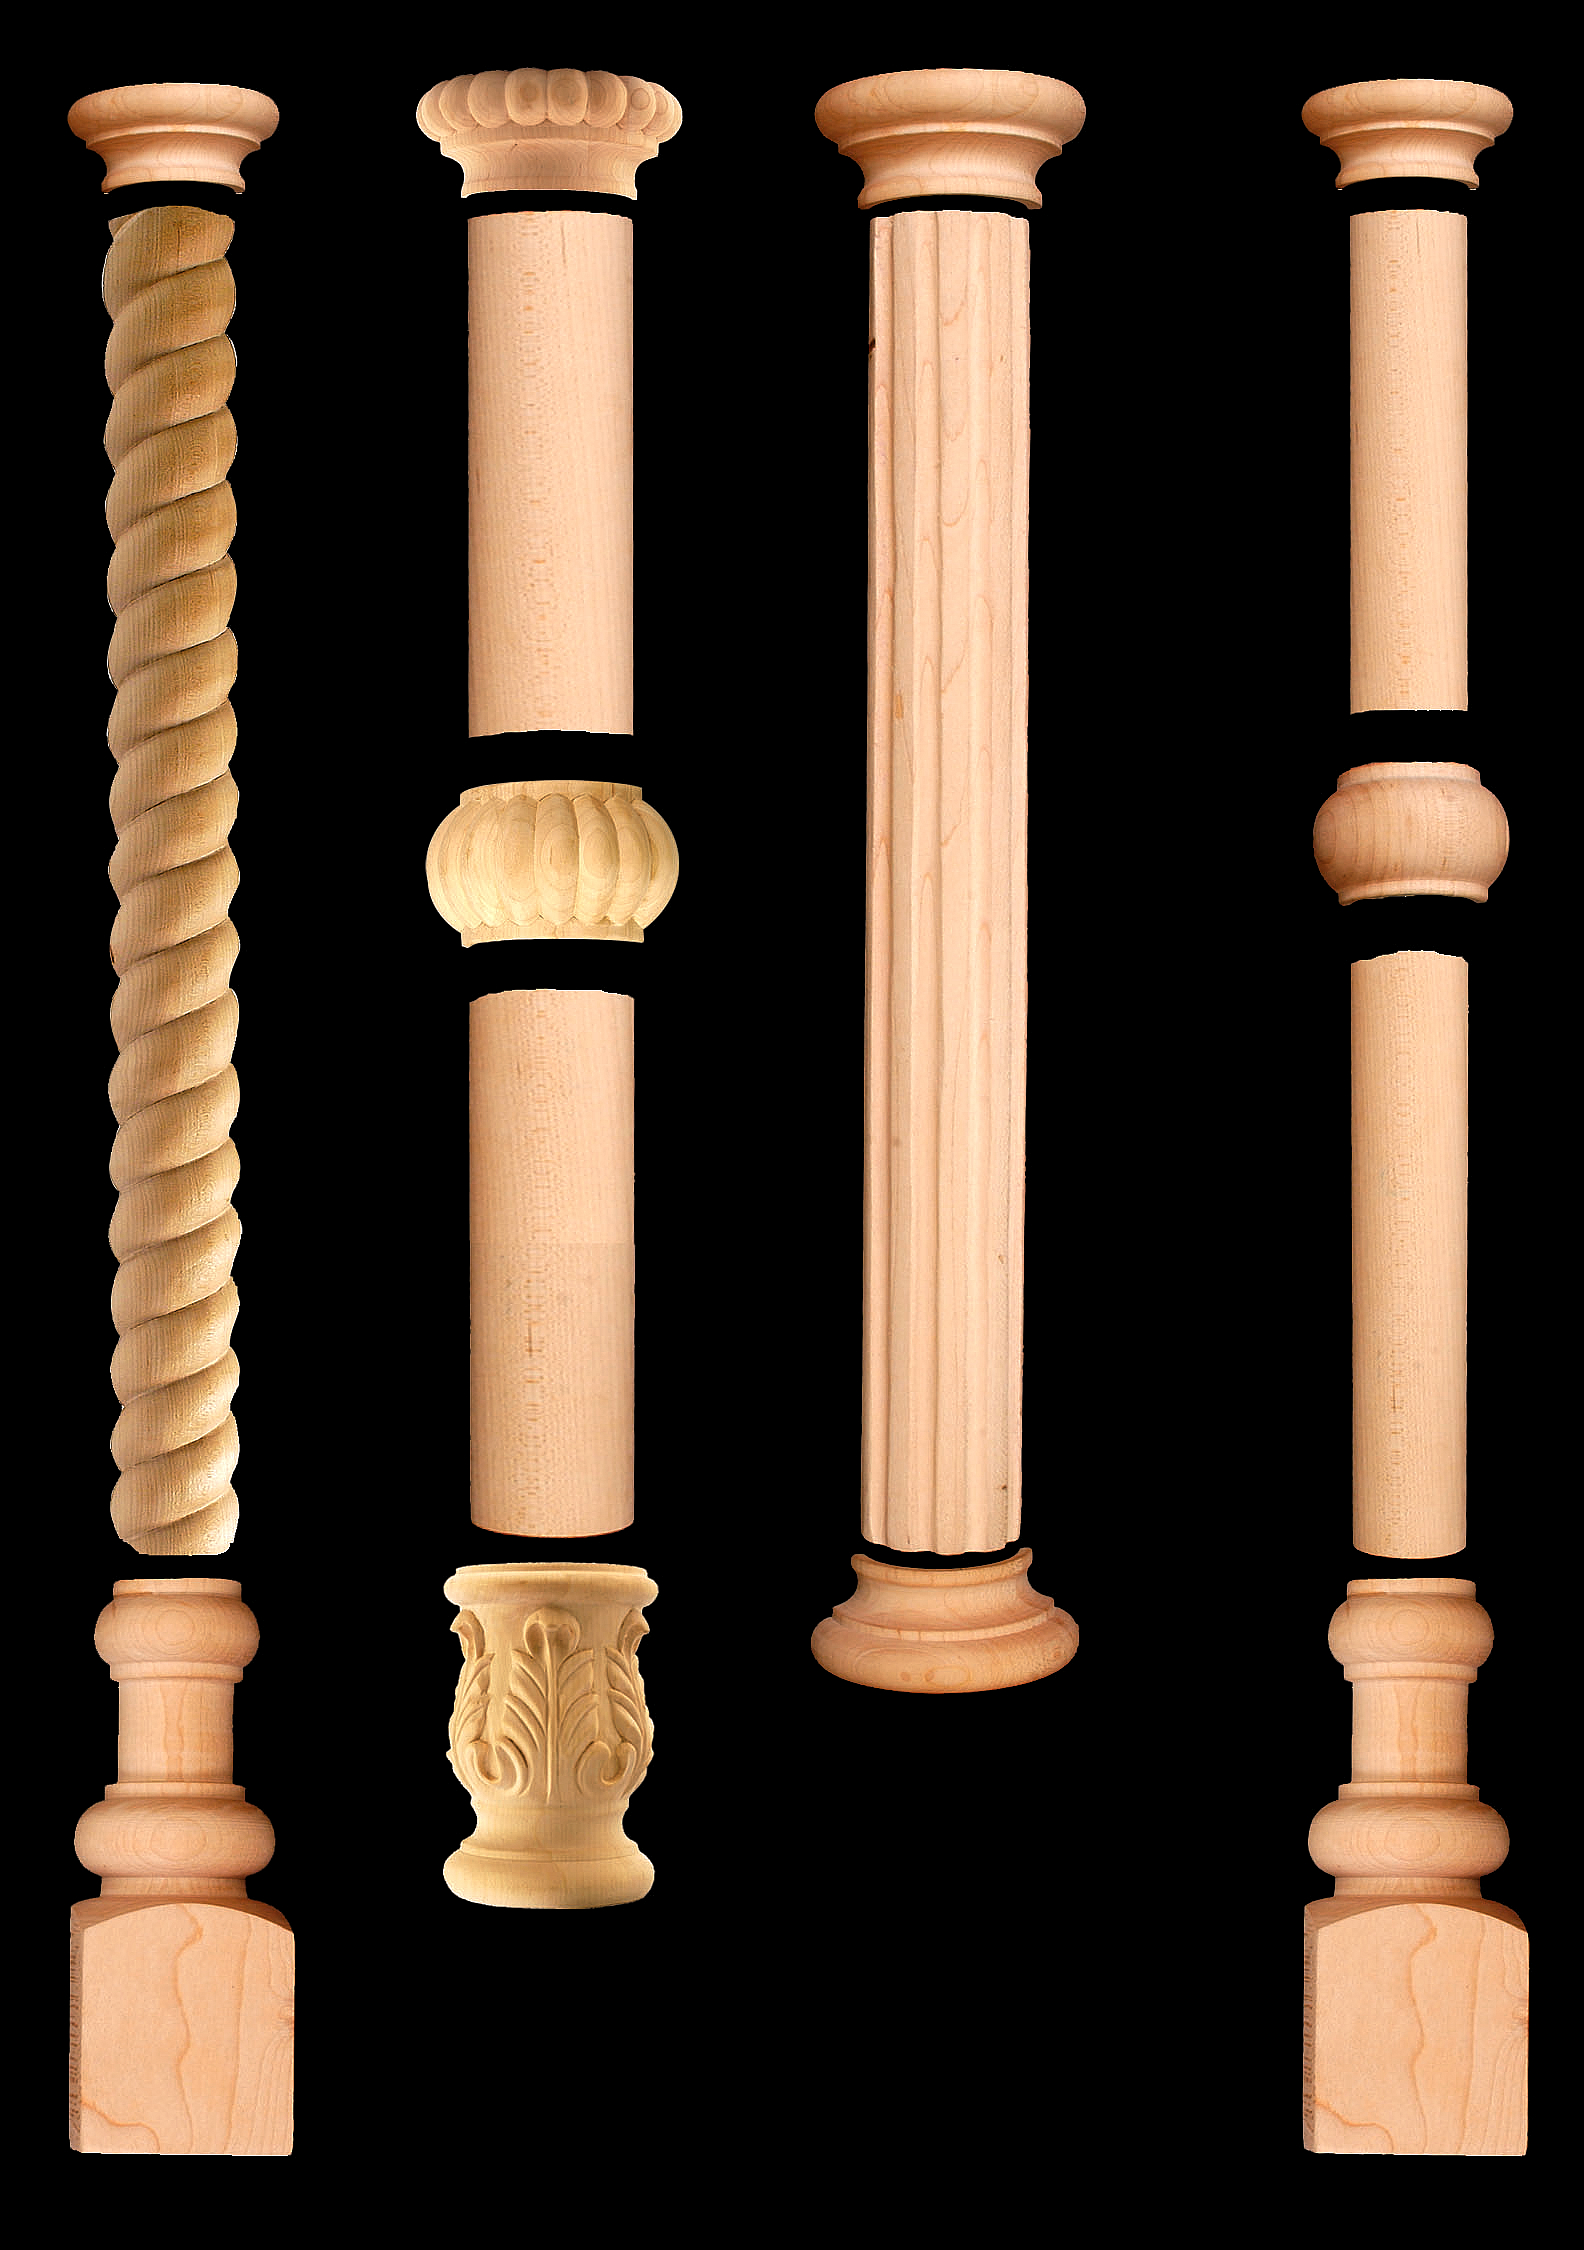 Outwater Introduces Its Updated Design A Column Decorative